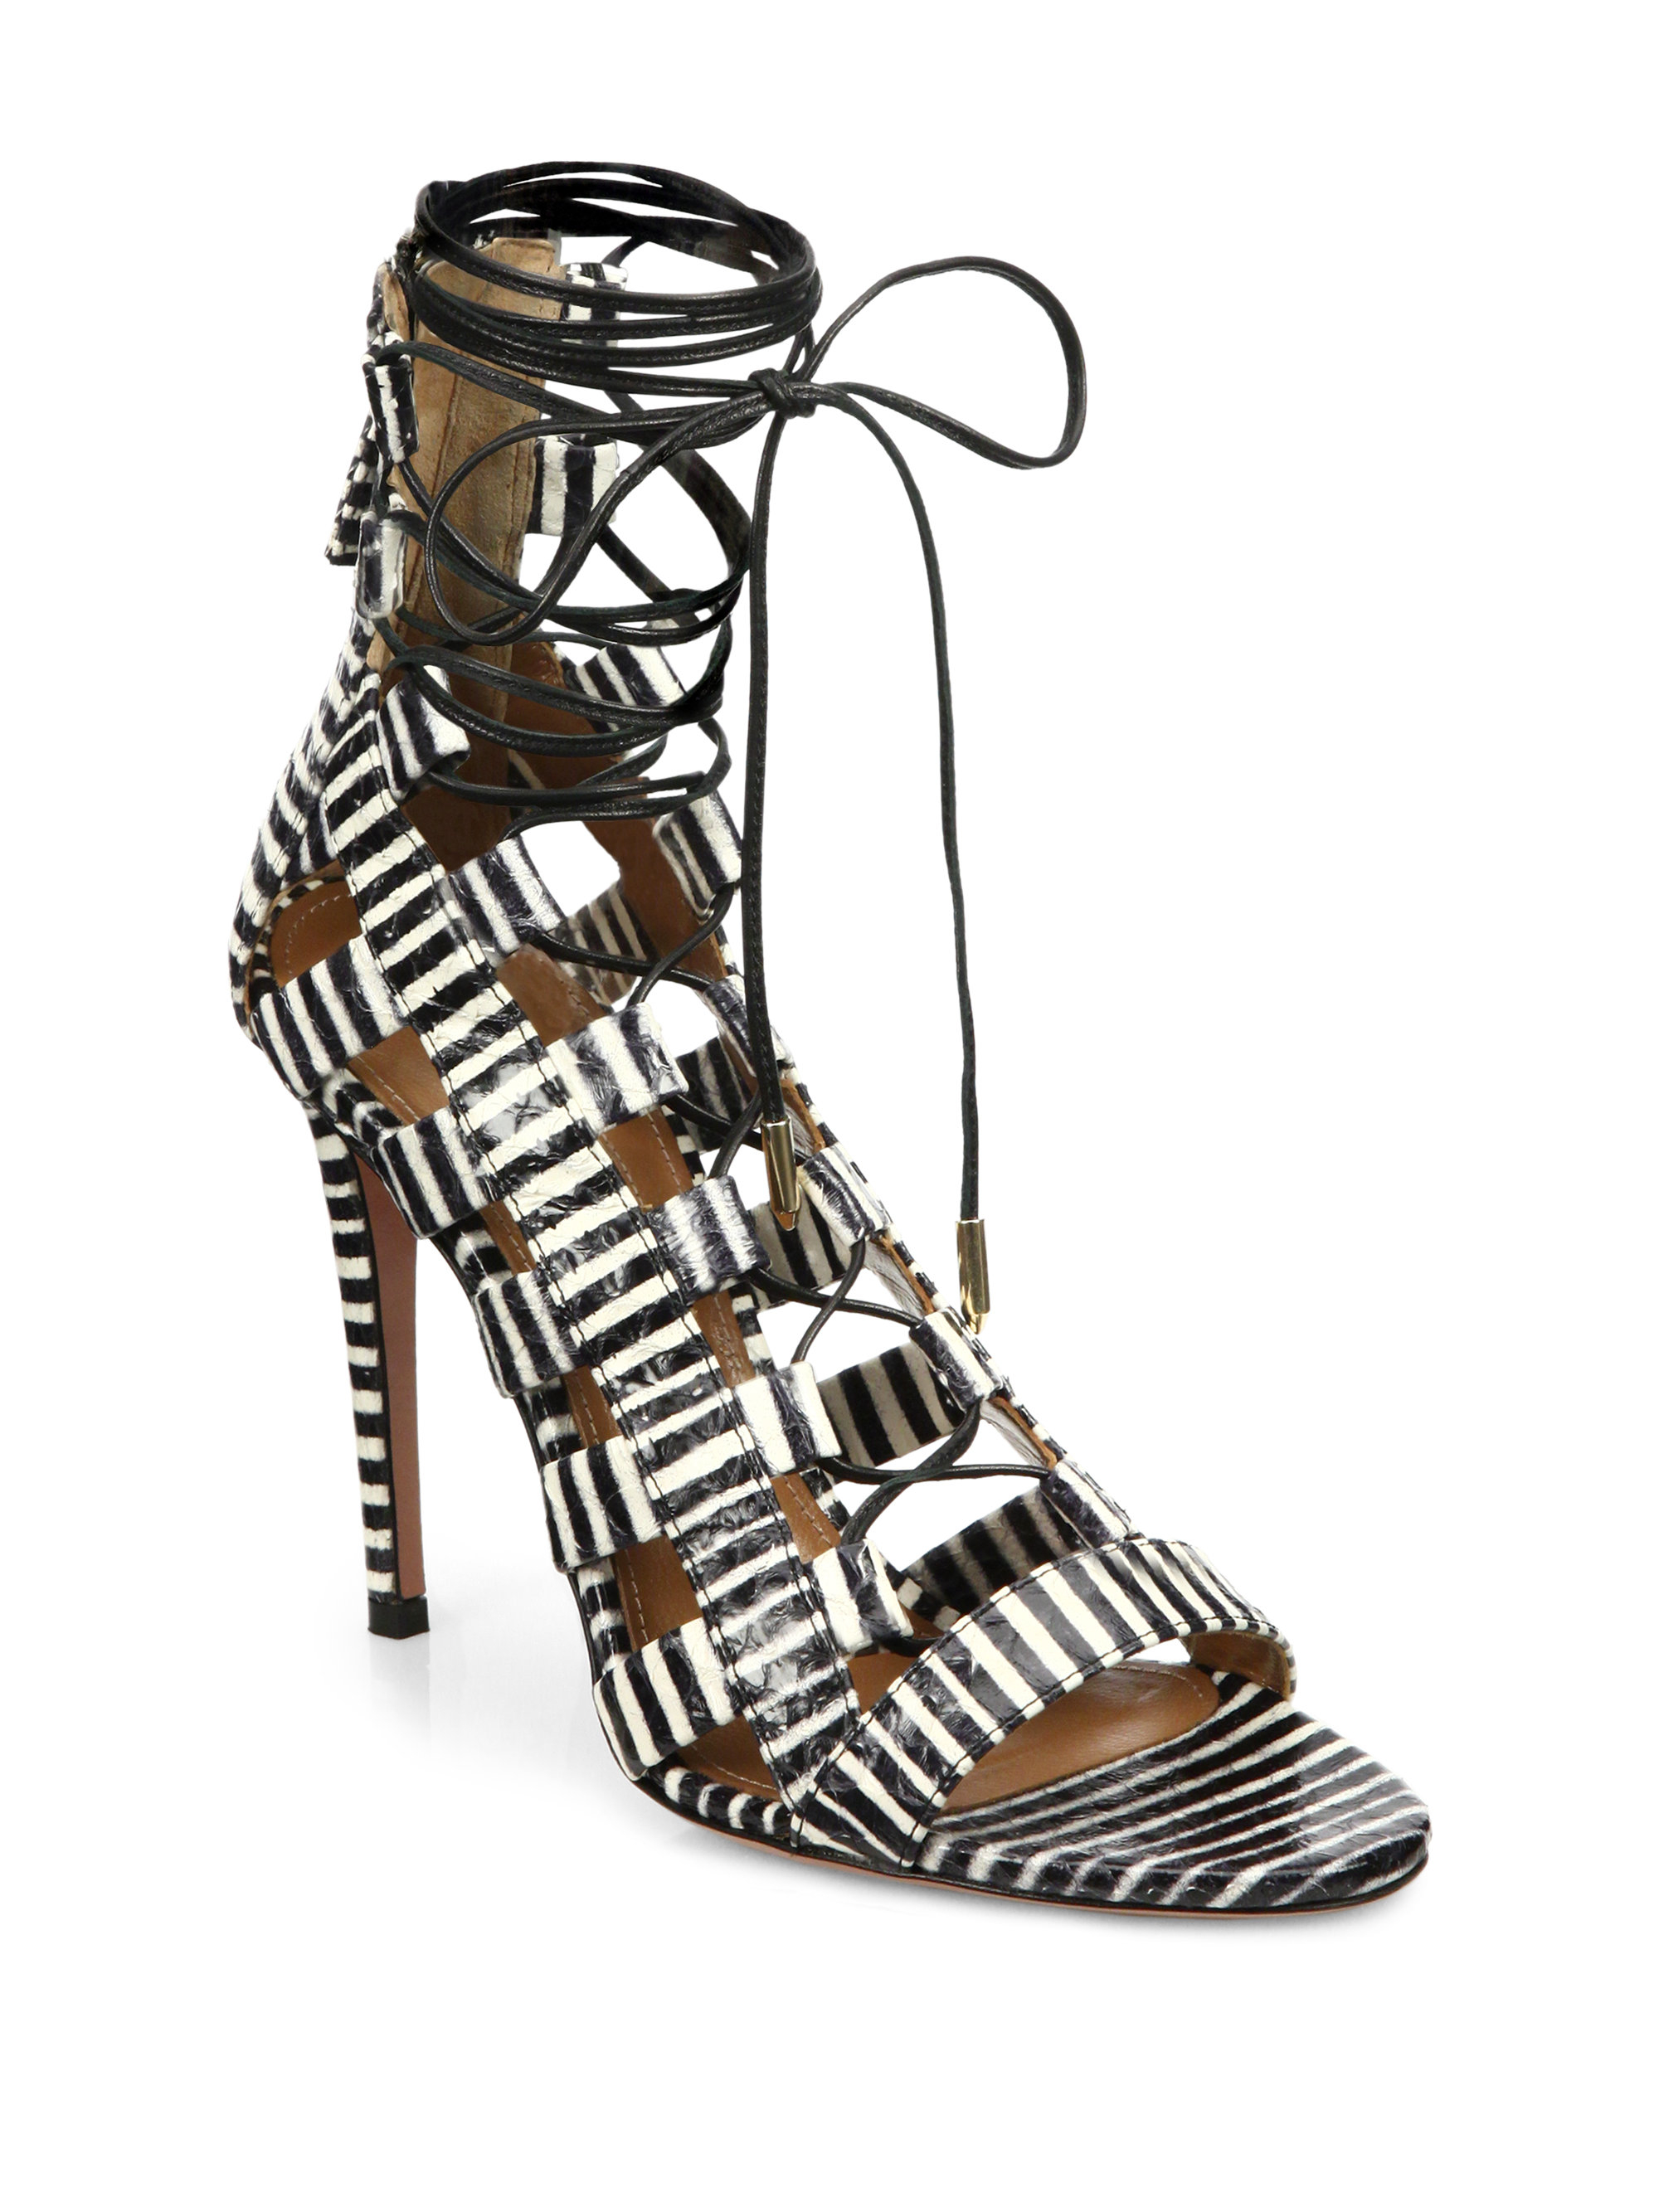 fbb5d1aa954 Lyst - Aquazzura Amazon Striped Leather Lace-up Sandals in Black